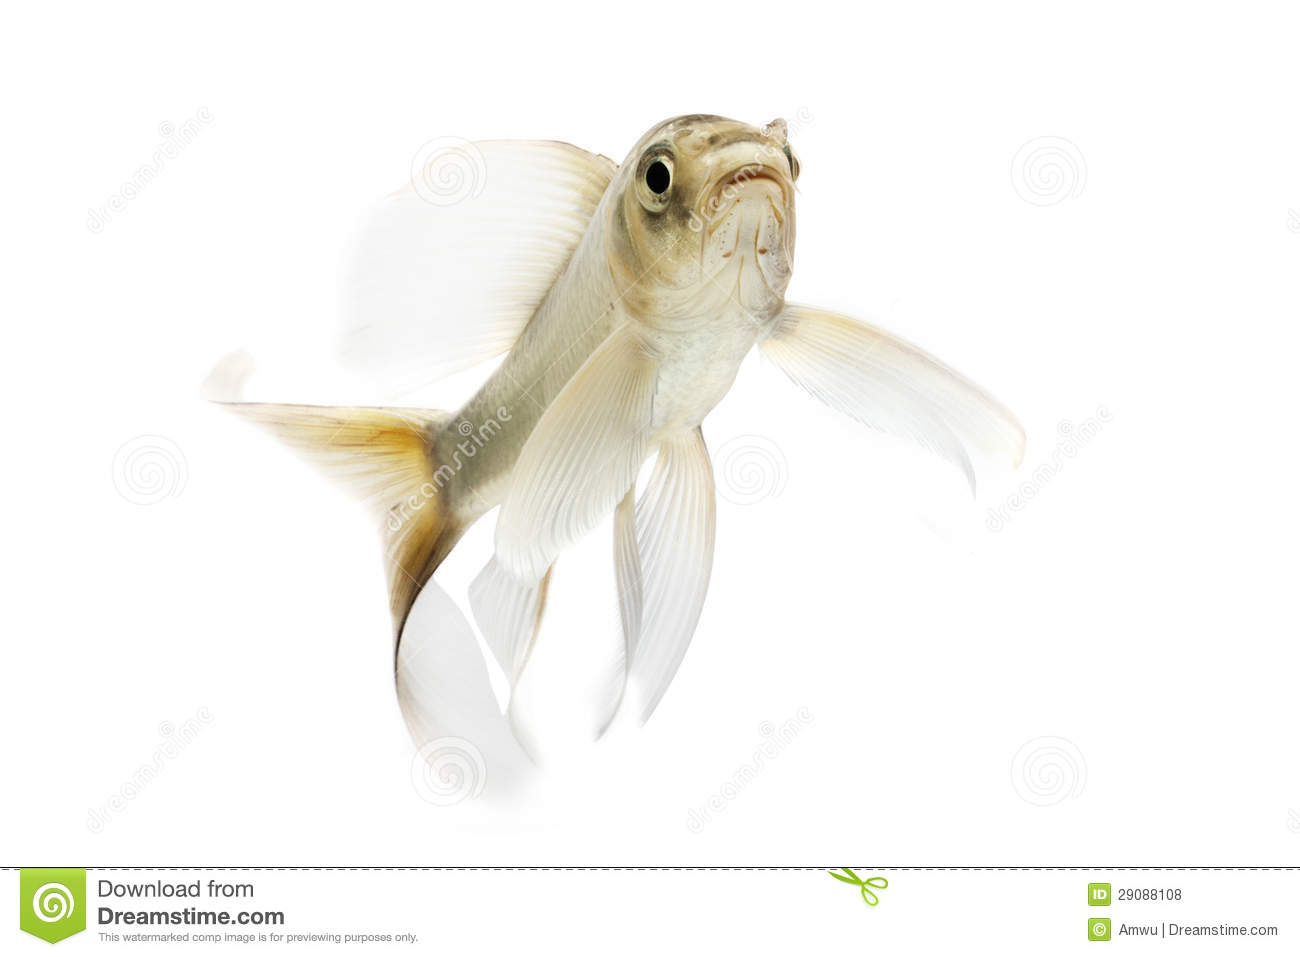 Silver koi fish royalty free stock photos image 29088108 for Silver koi fish